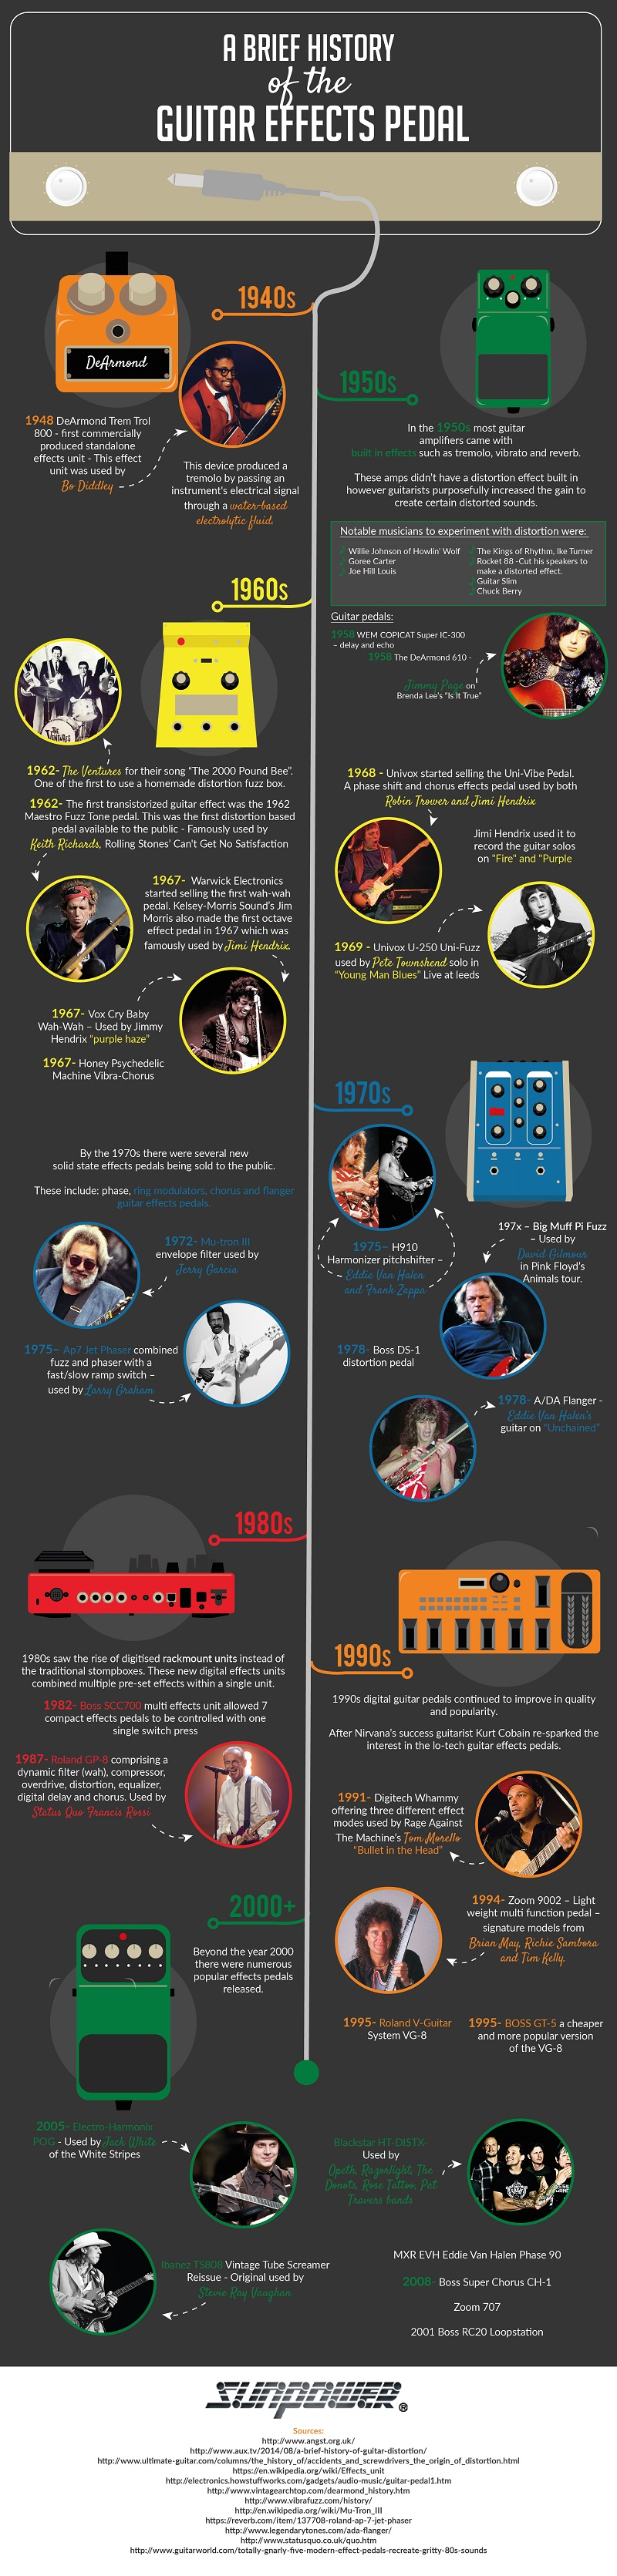 A Brief History of Guitar Effects Pedals [Infographic] - Sunpower UK